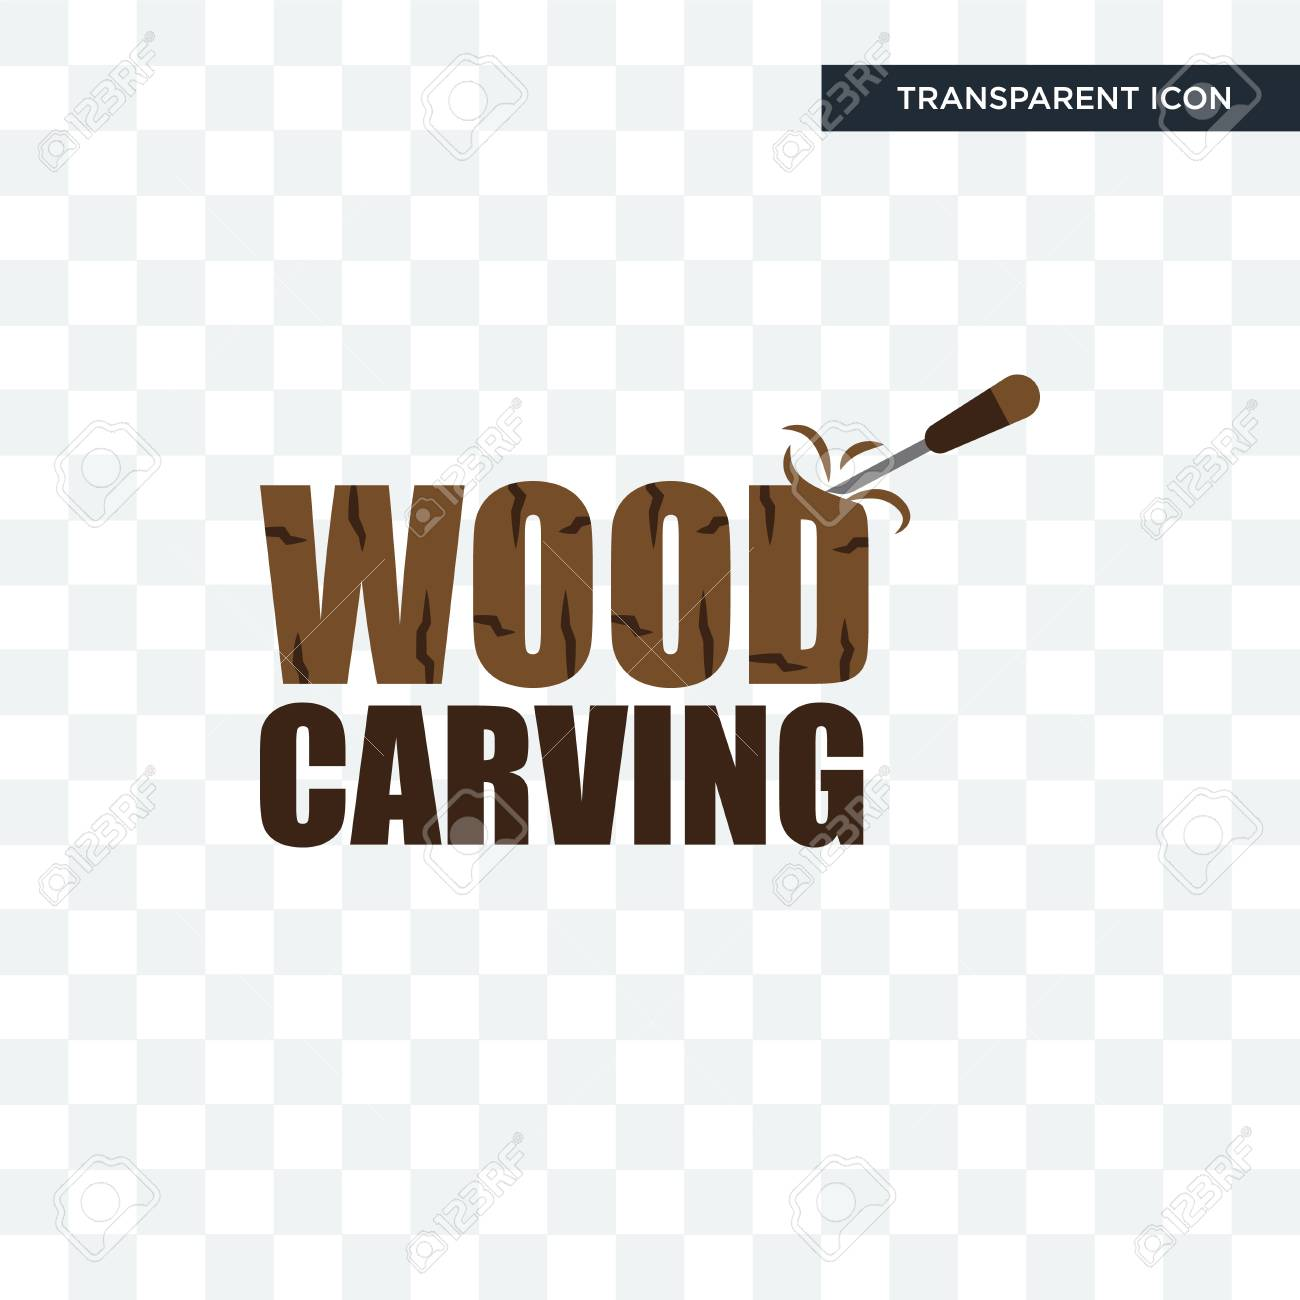 wood carving vector icon isolated on transparent background, wood carving logo concept - 107946778